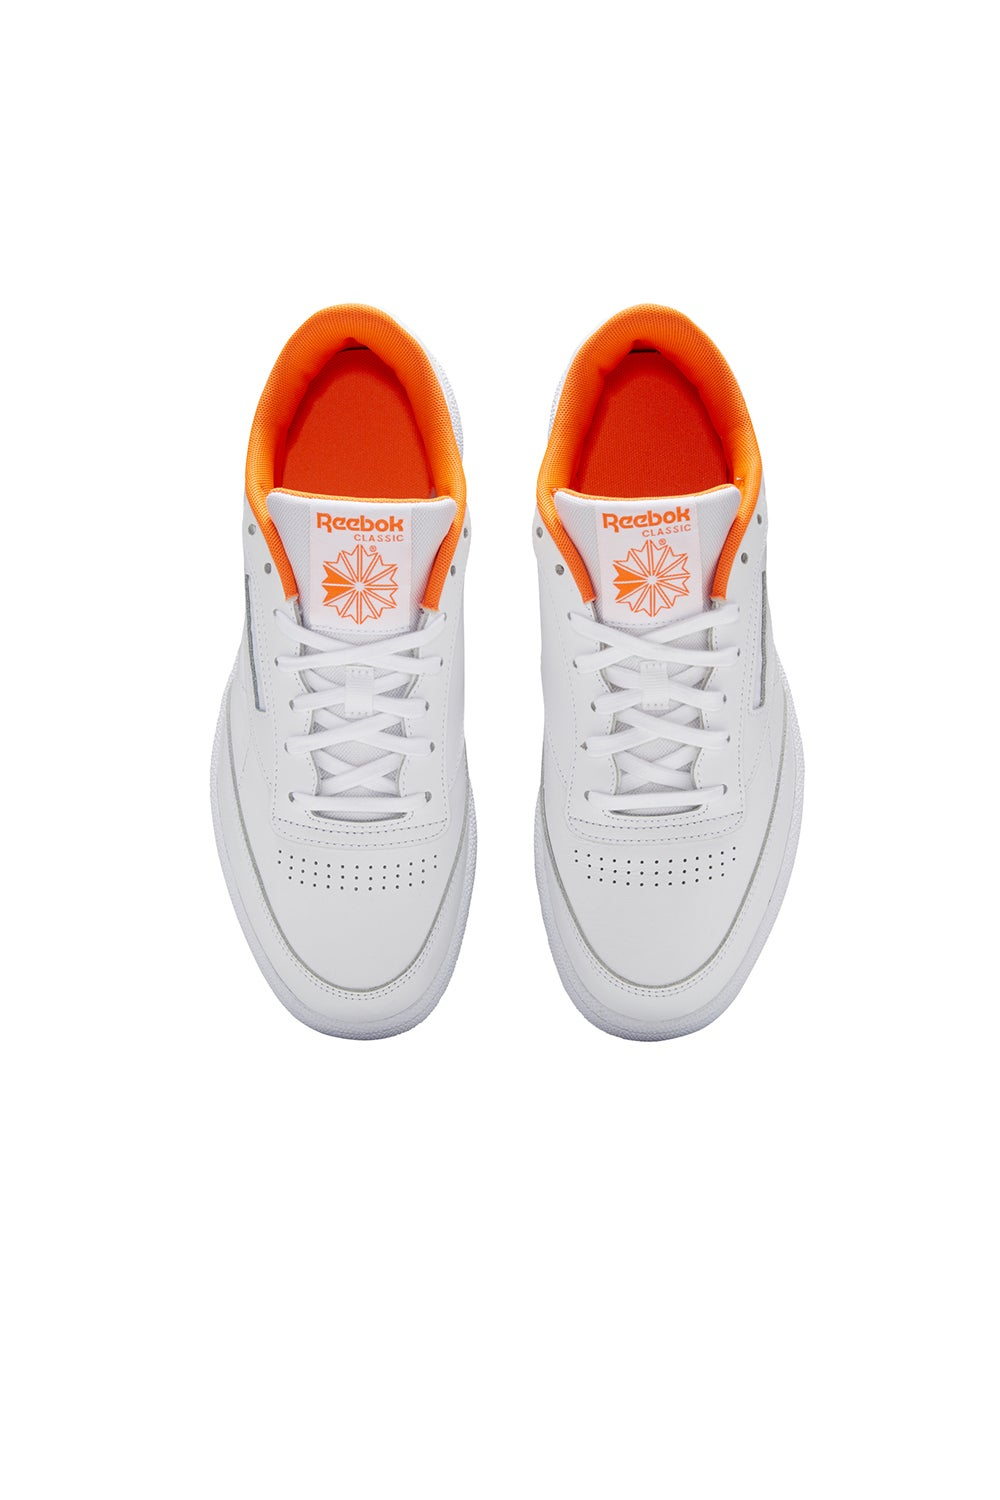 Reebok Club C 85 Solar Orange